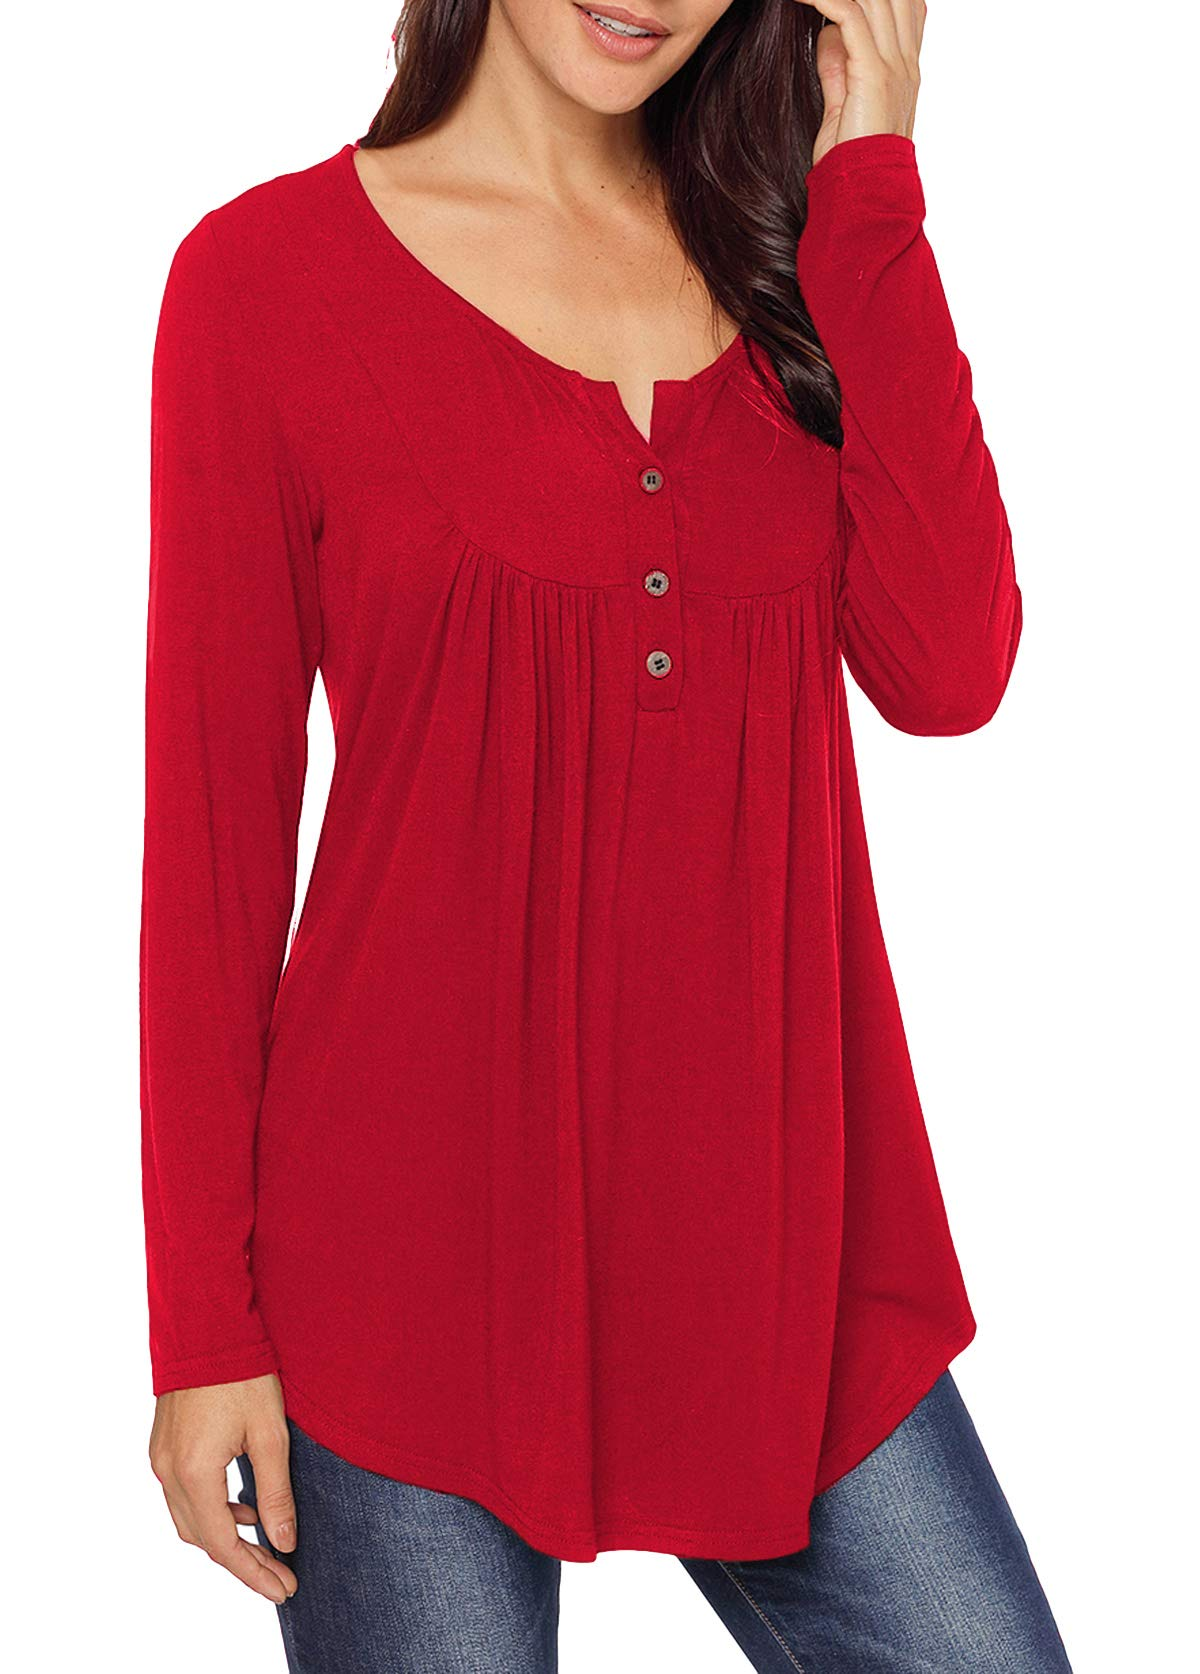 Mystry Zone Women's Casual Long Sleeve Henley Shirt Button Tunic Tops Blouse Red X-Large